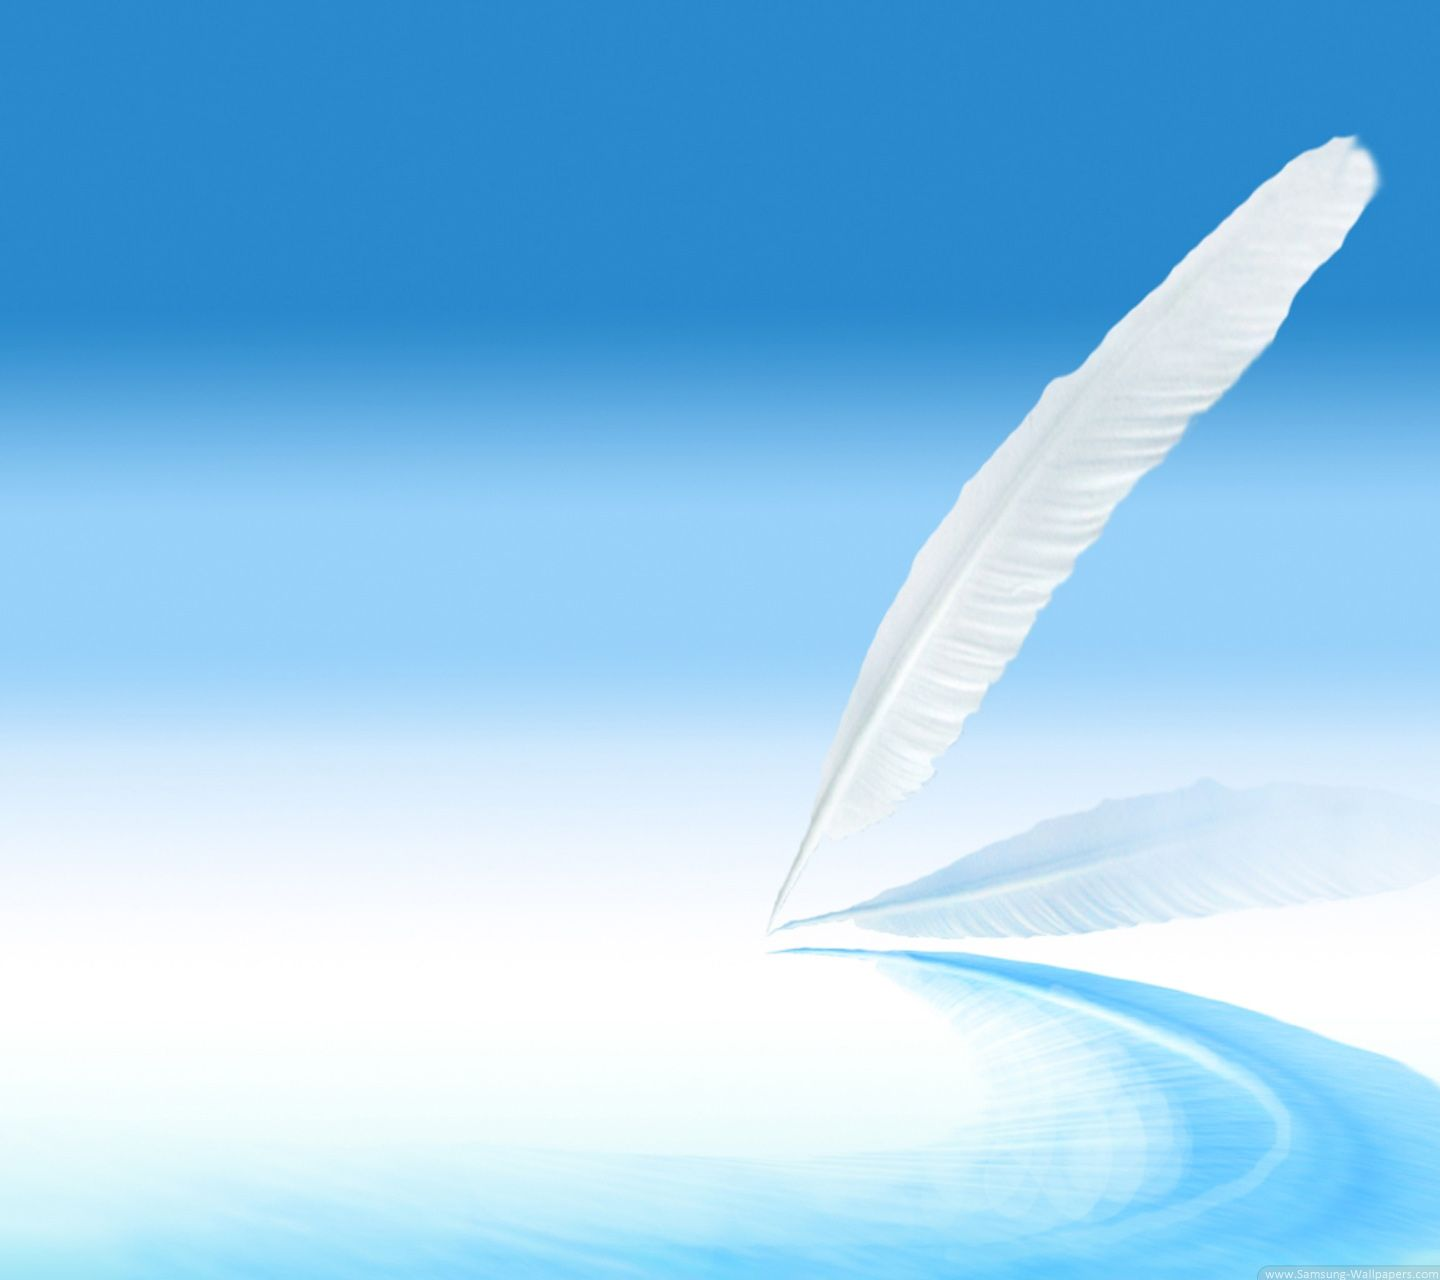 Samsung Galaxy Feather Wallpaper Posted By Ryan Anderson